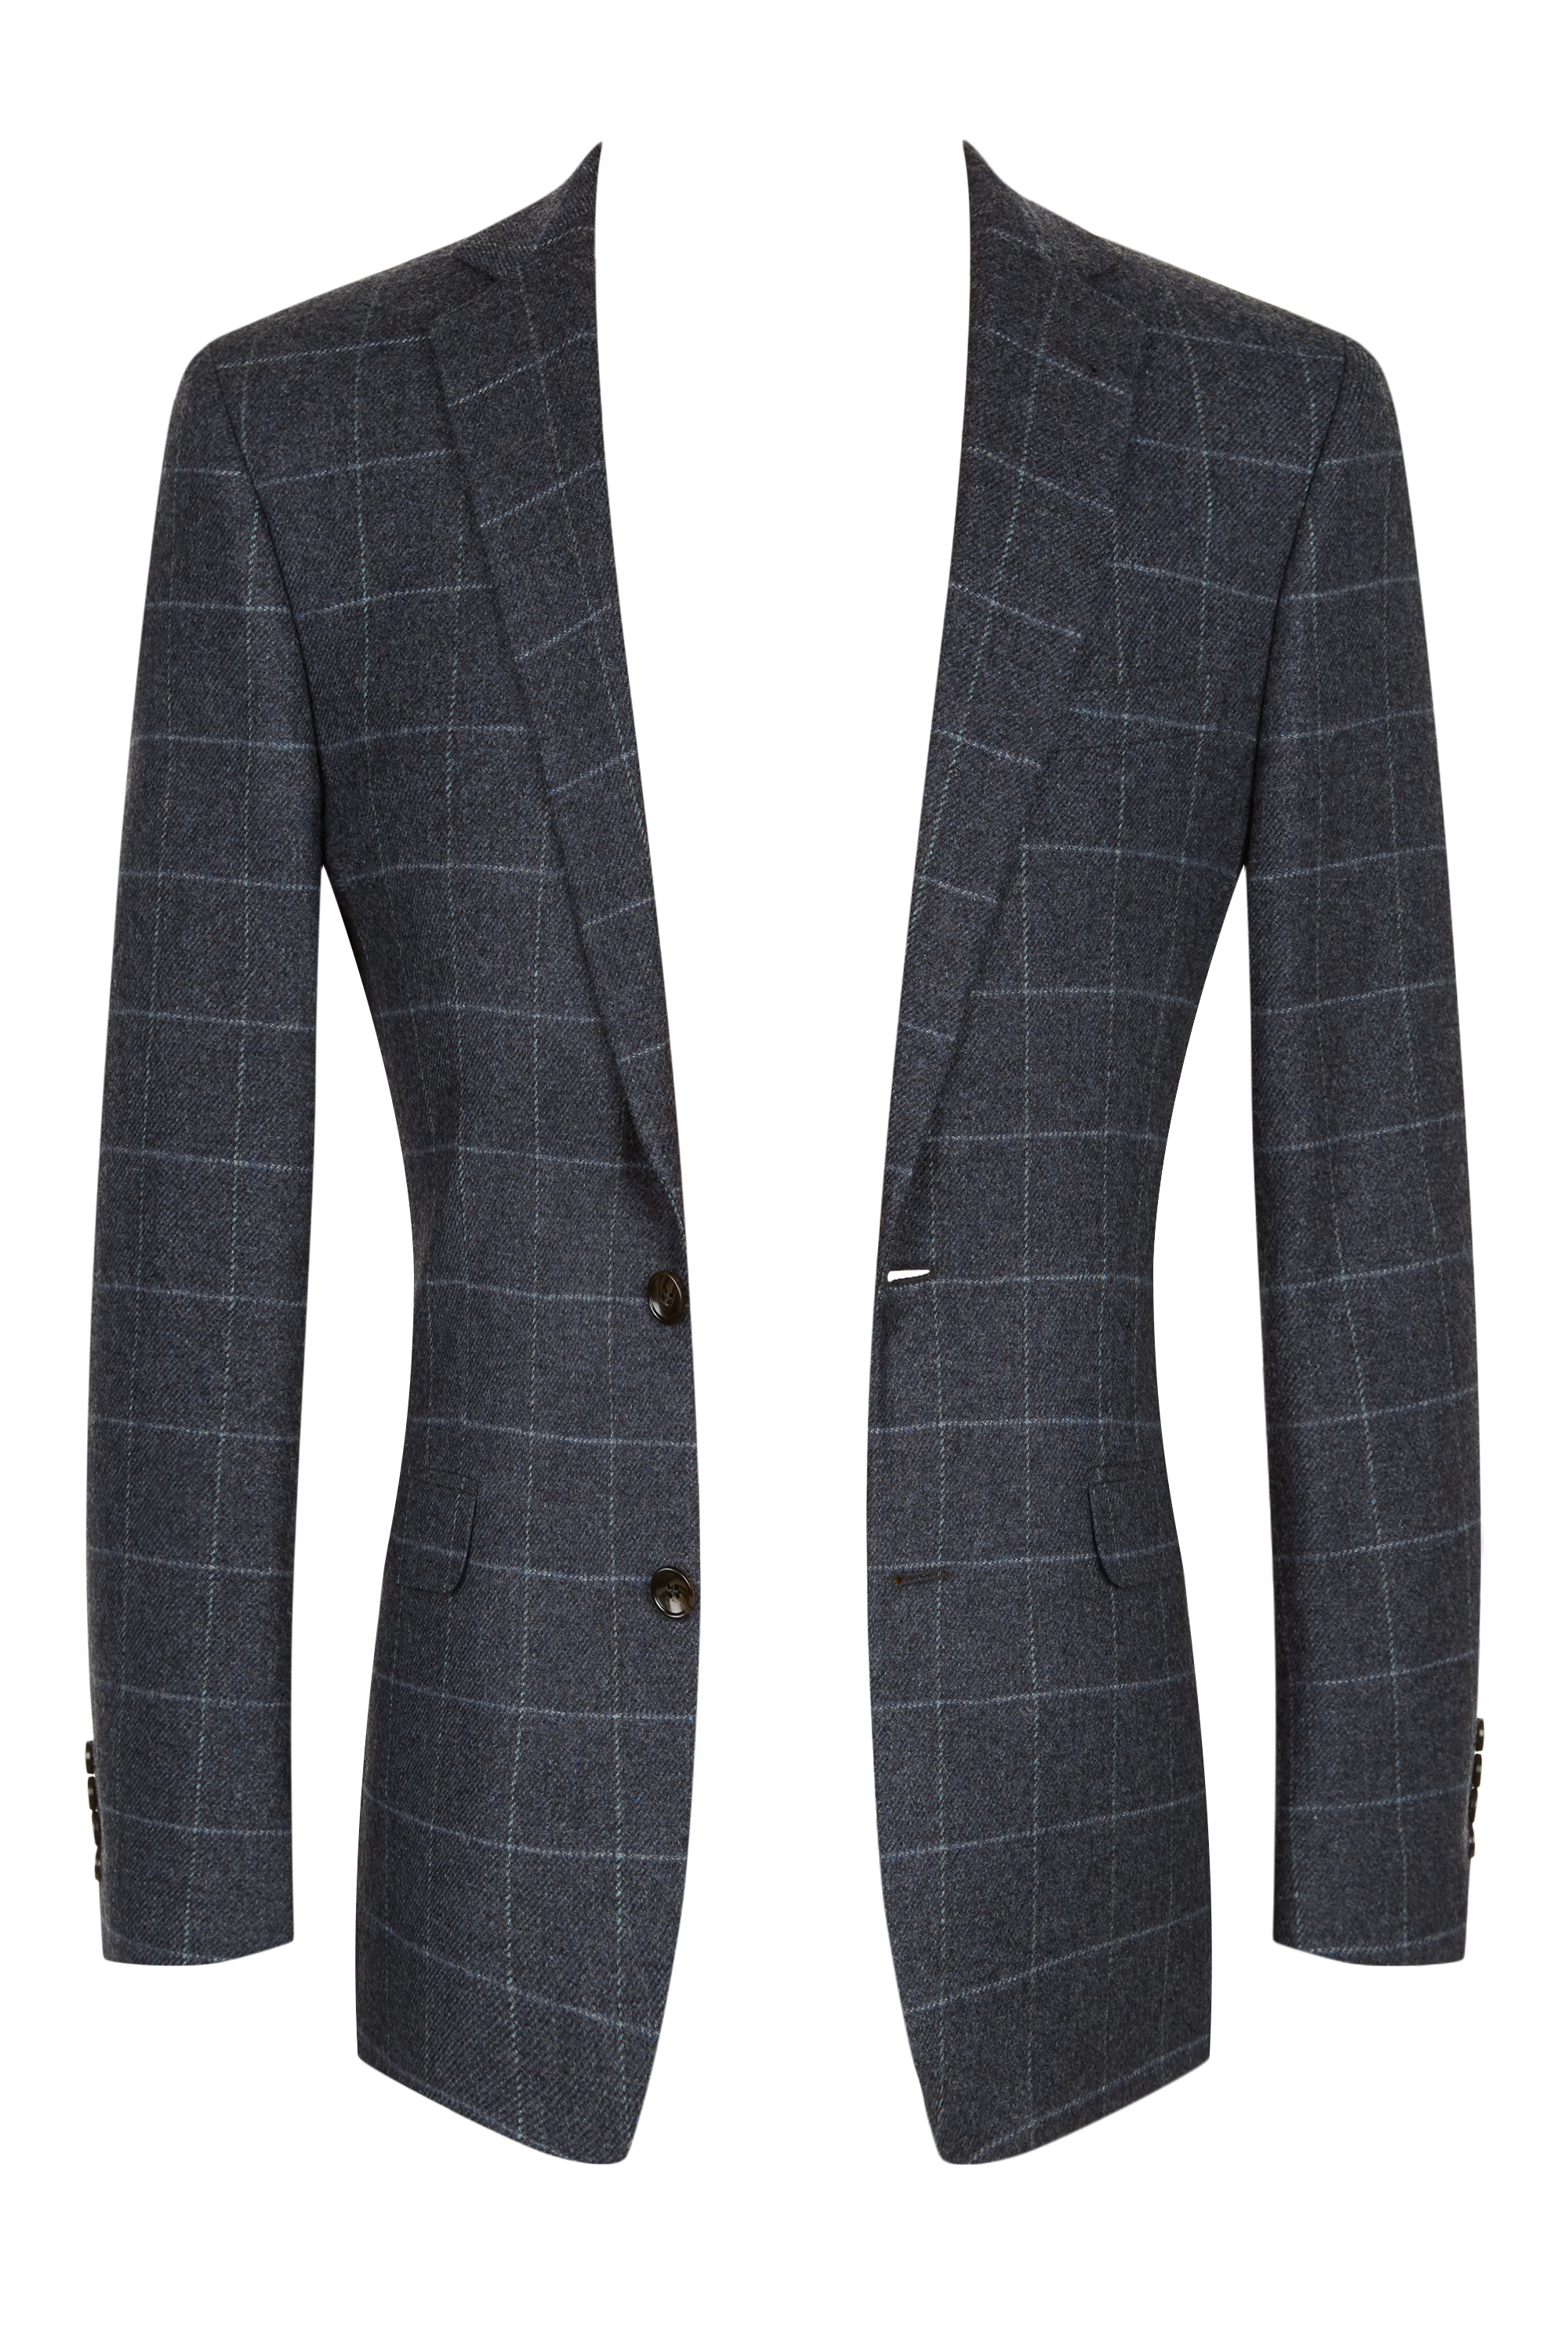 100/% WOOL TWEED FABRIC MIX LT GREY//PINK WINDOWPANE CHECK MADE IN GREAT BRITAIN